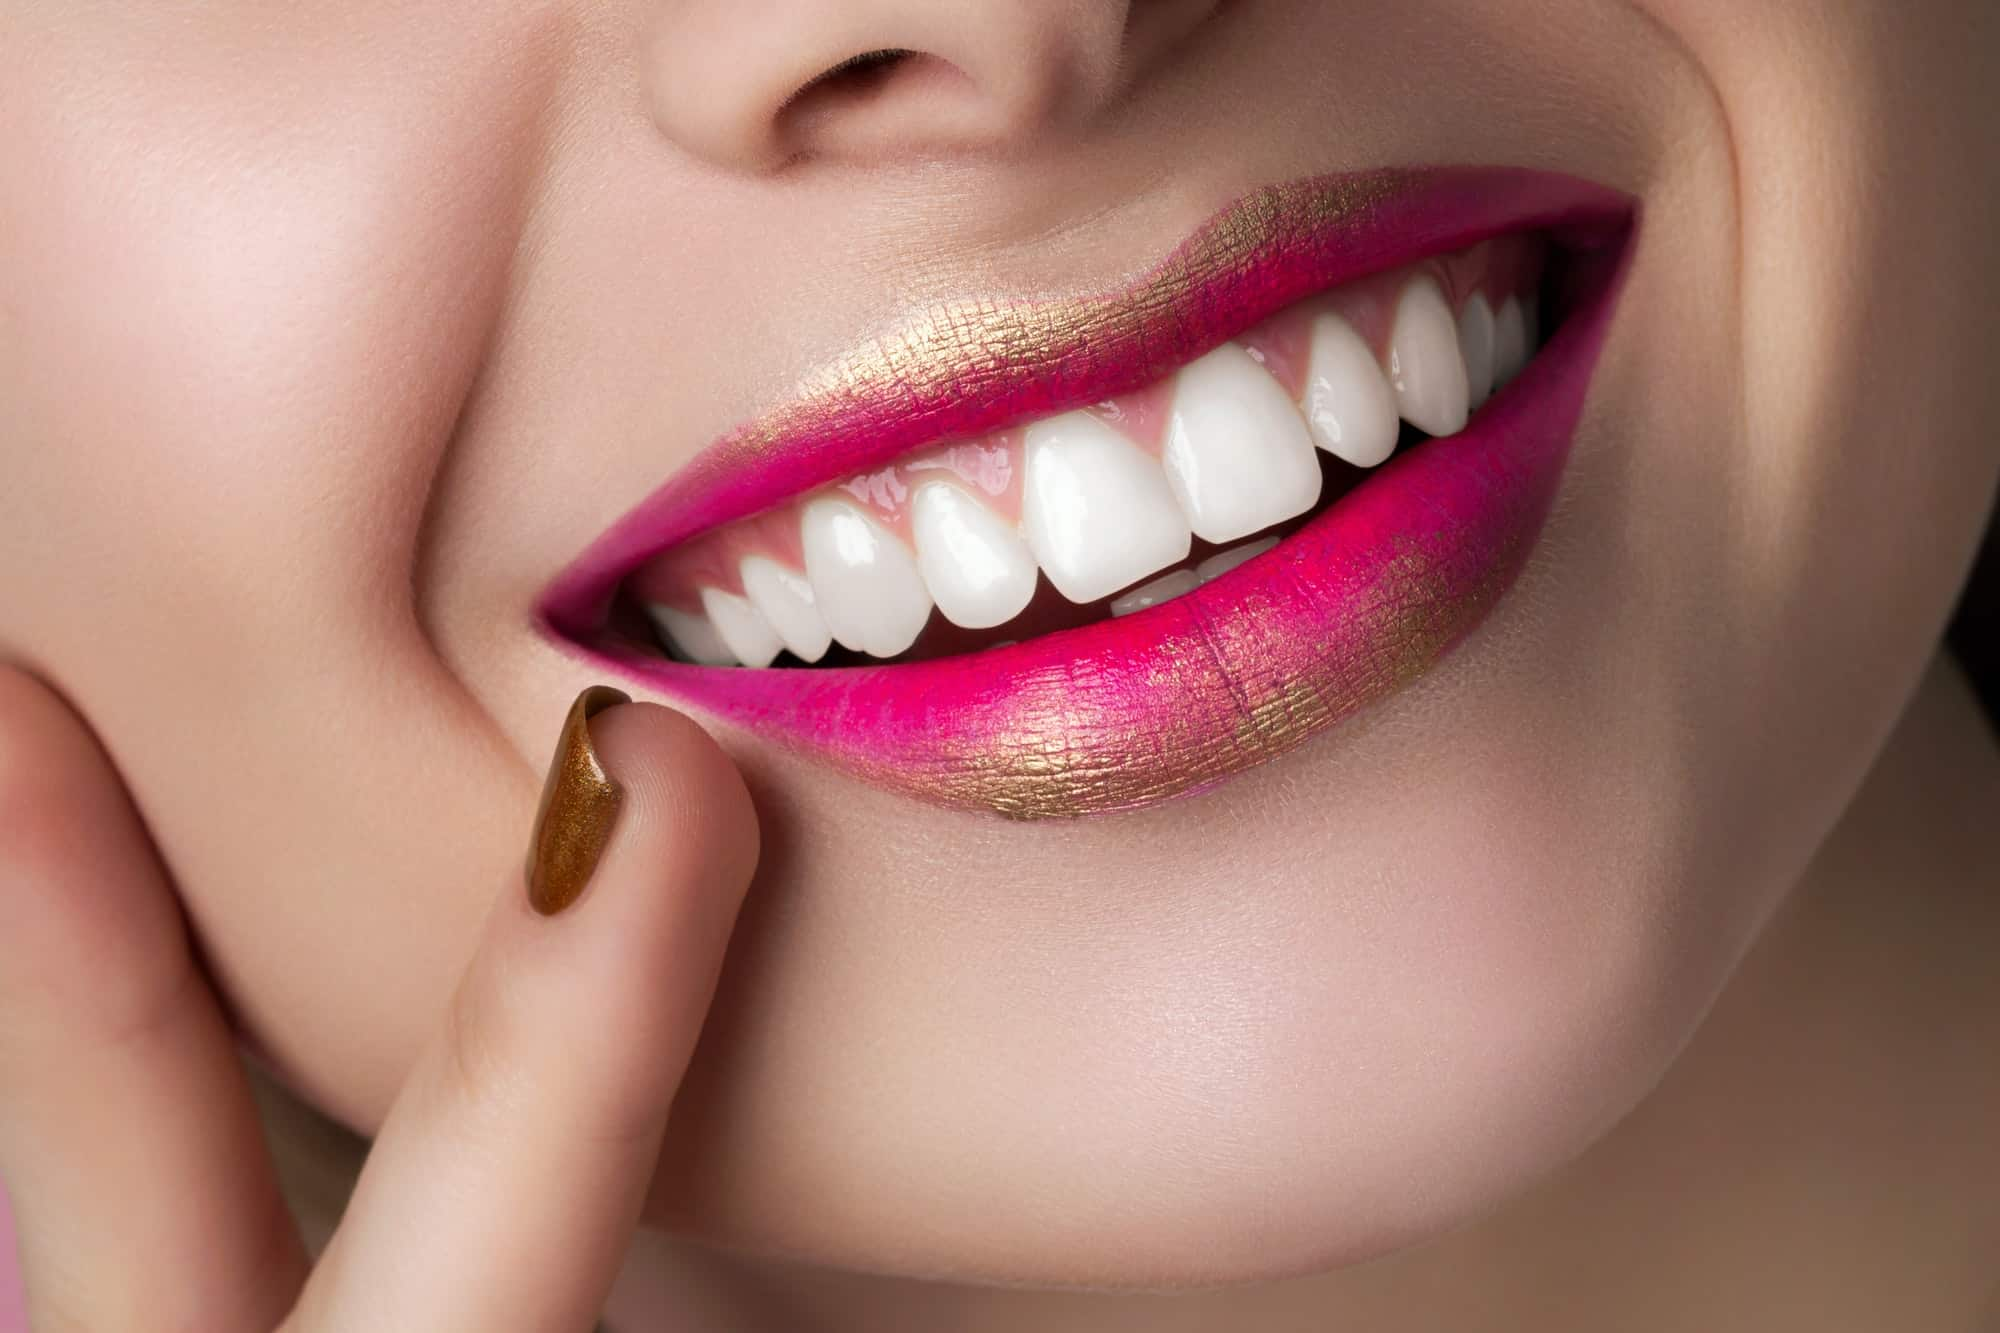 Close up view of beautiful smiling woman lips